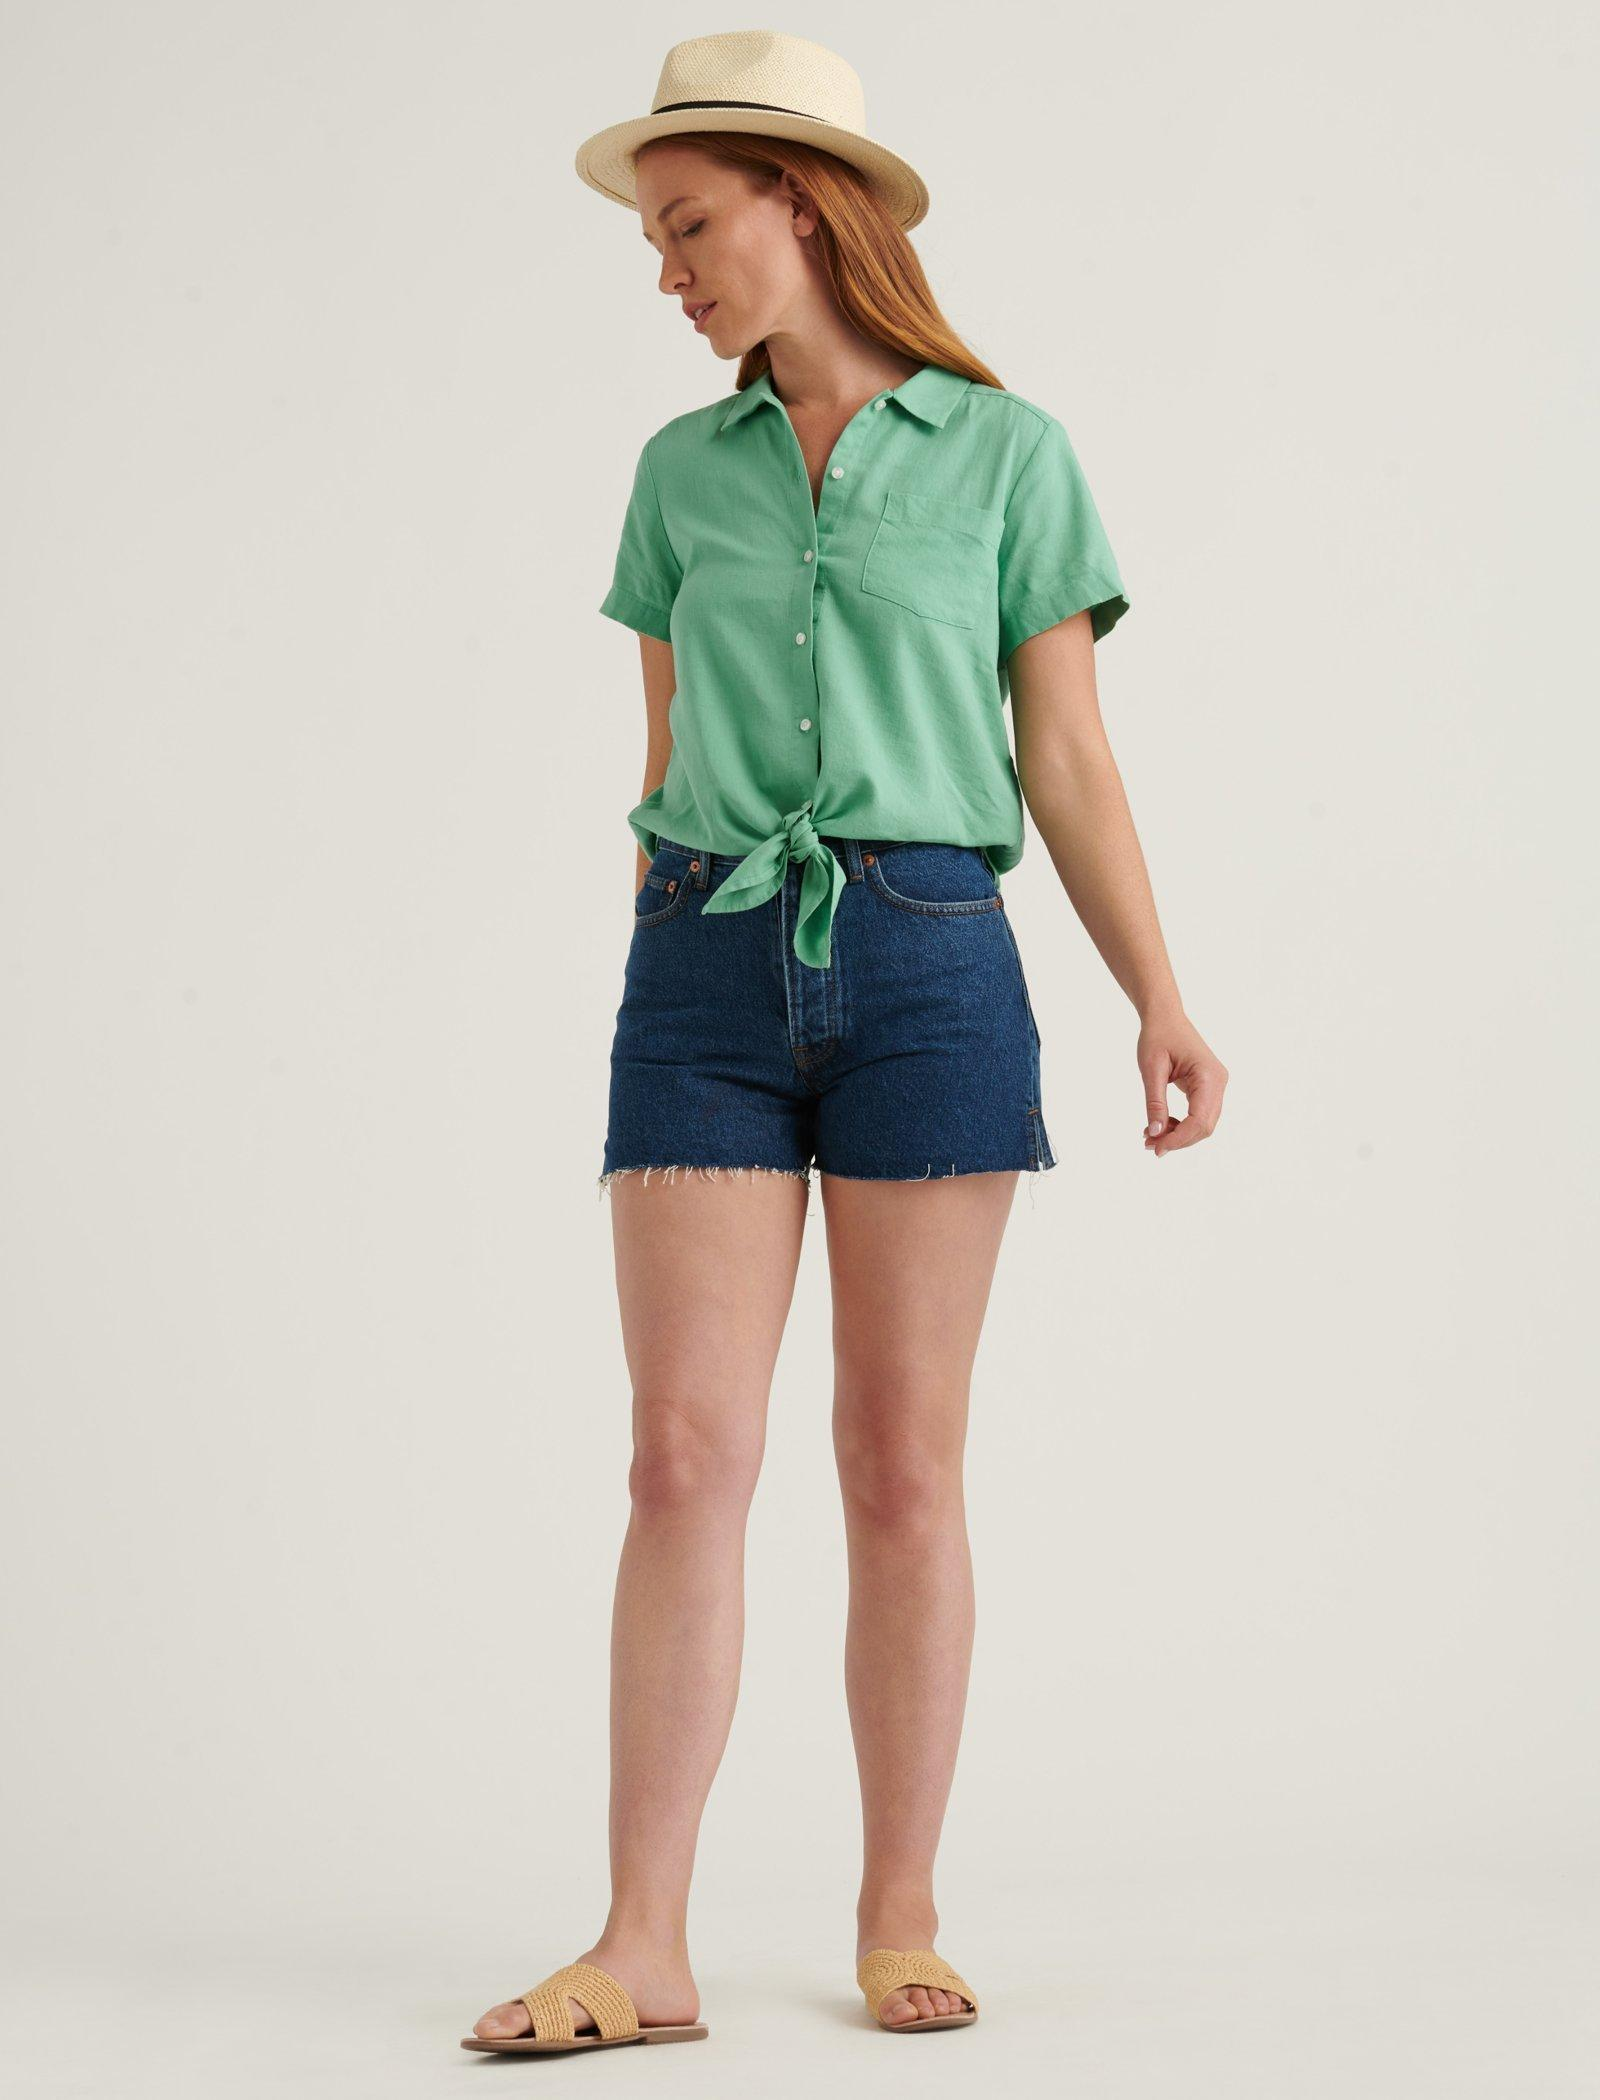 TIE FRONT SHORT SLEEVE SHIRT, image 2